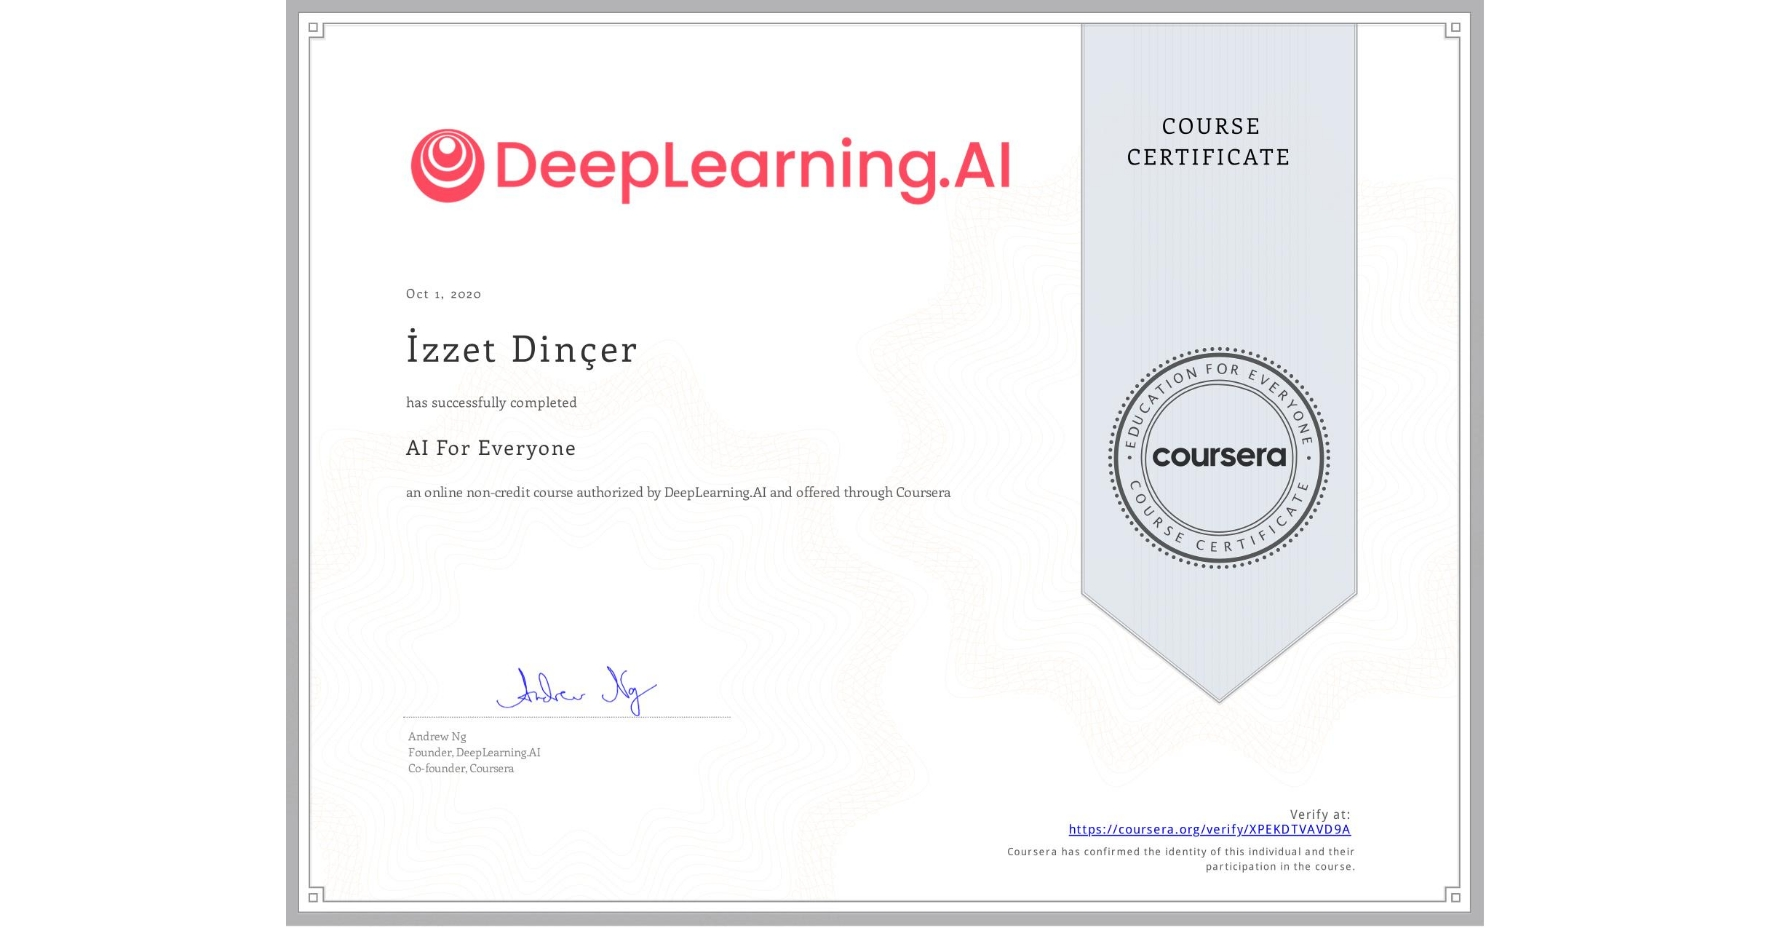 View certificate for İzzet Dinçer, AI For Everyone, an online non-credit course authorized by DeepLearning.AI and offered through Coursera